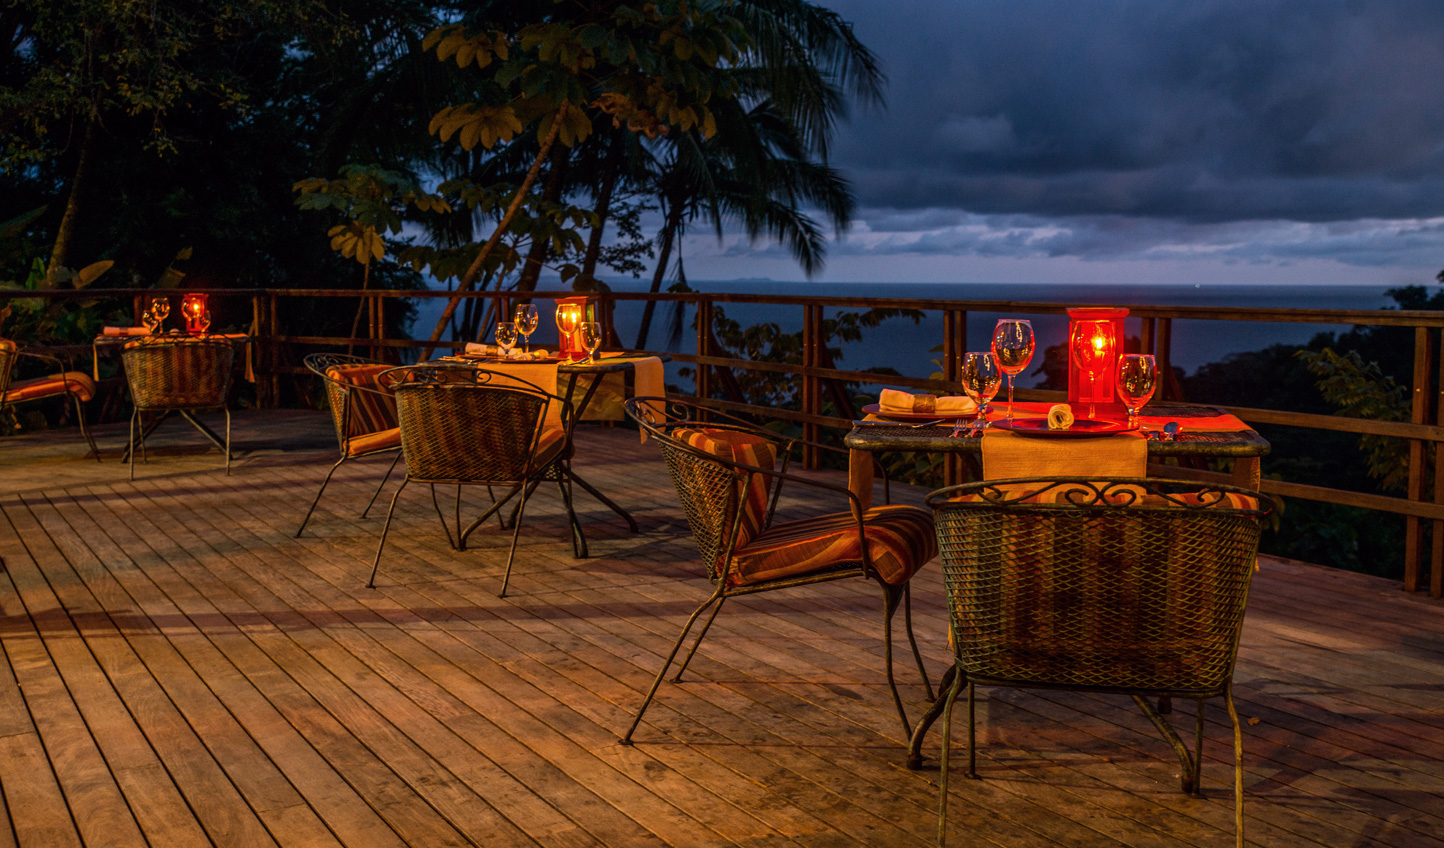 Dine beneath the stars with views out to the ocean